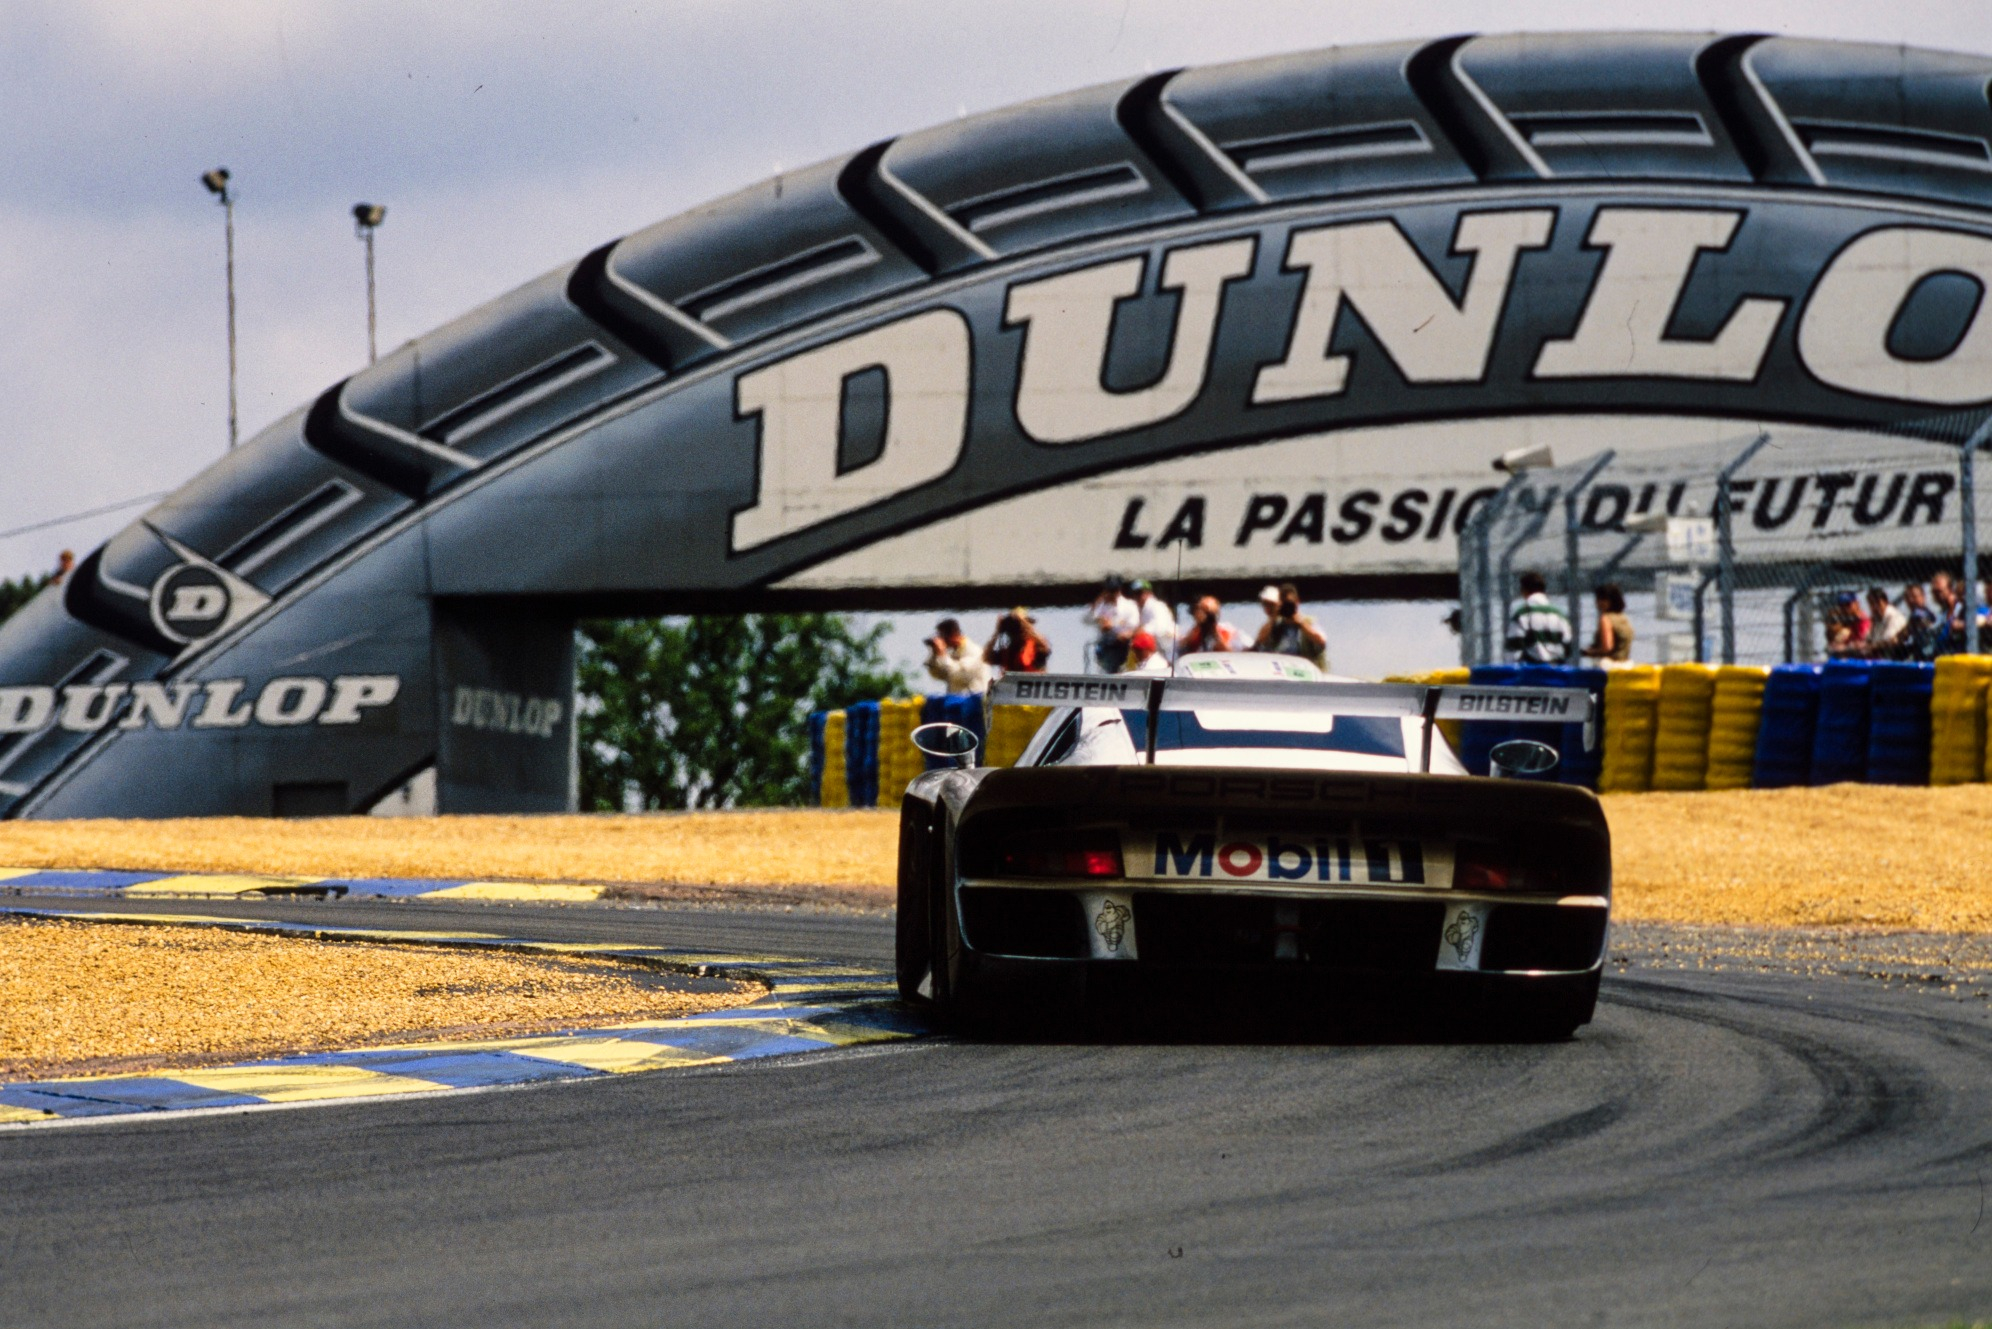 Collard arrived at the test still exhausted after losing Le Mans 1997 in hour 21 when his Porsche caught fire